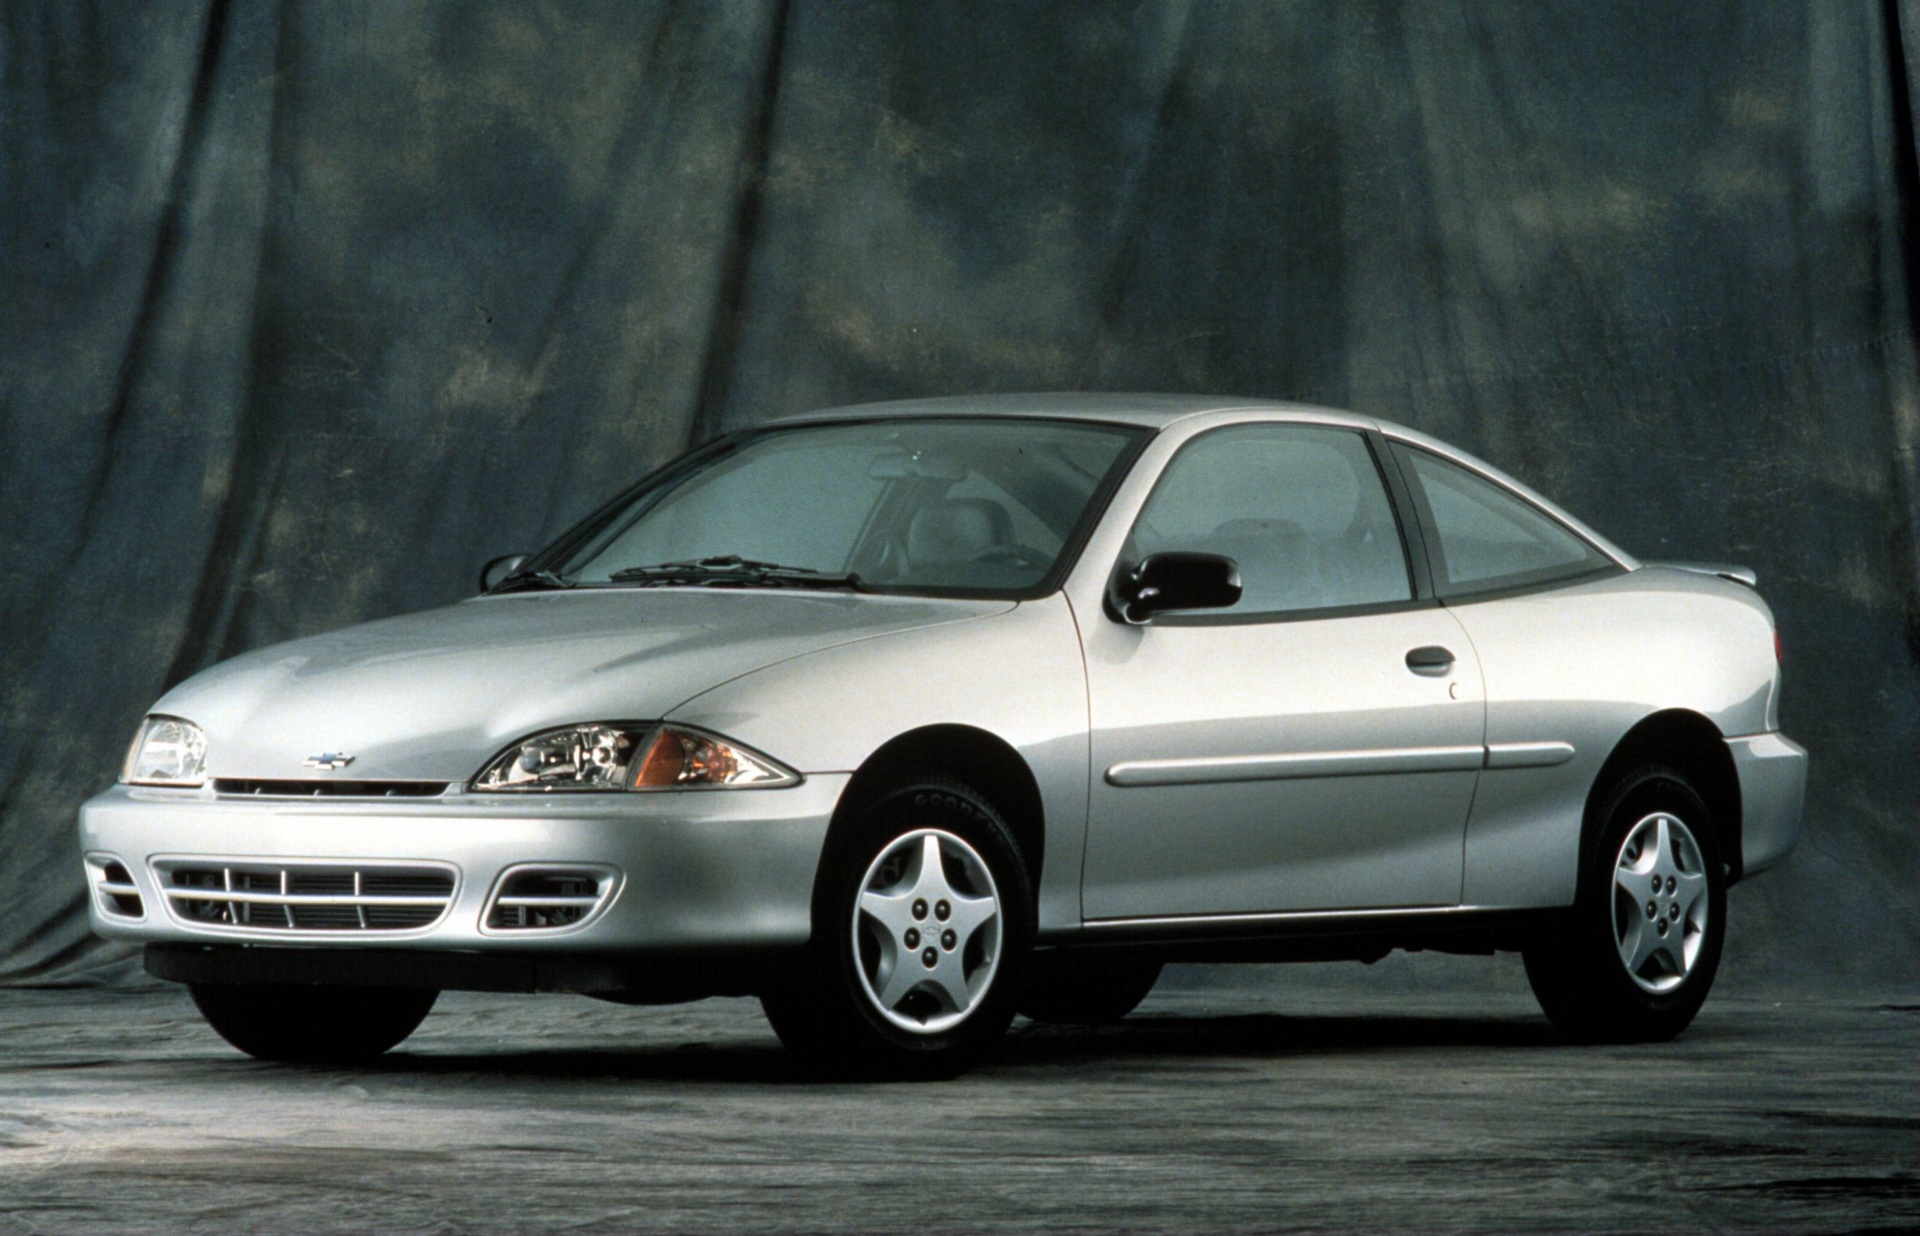 2000 Chevrolet Cavalier History, Pictures, Value, Auction Sales, Research  and News